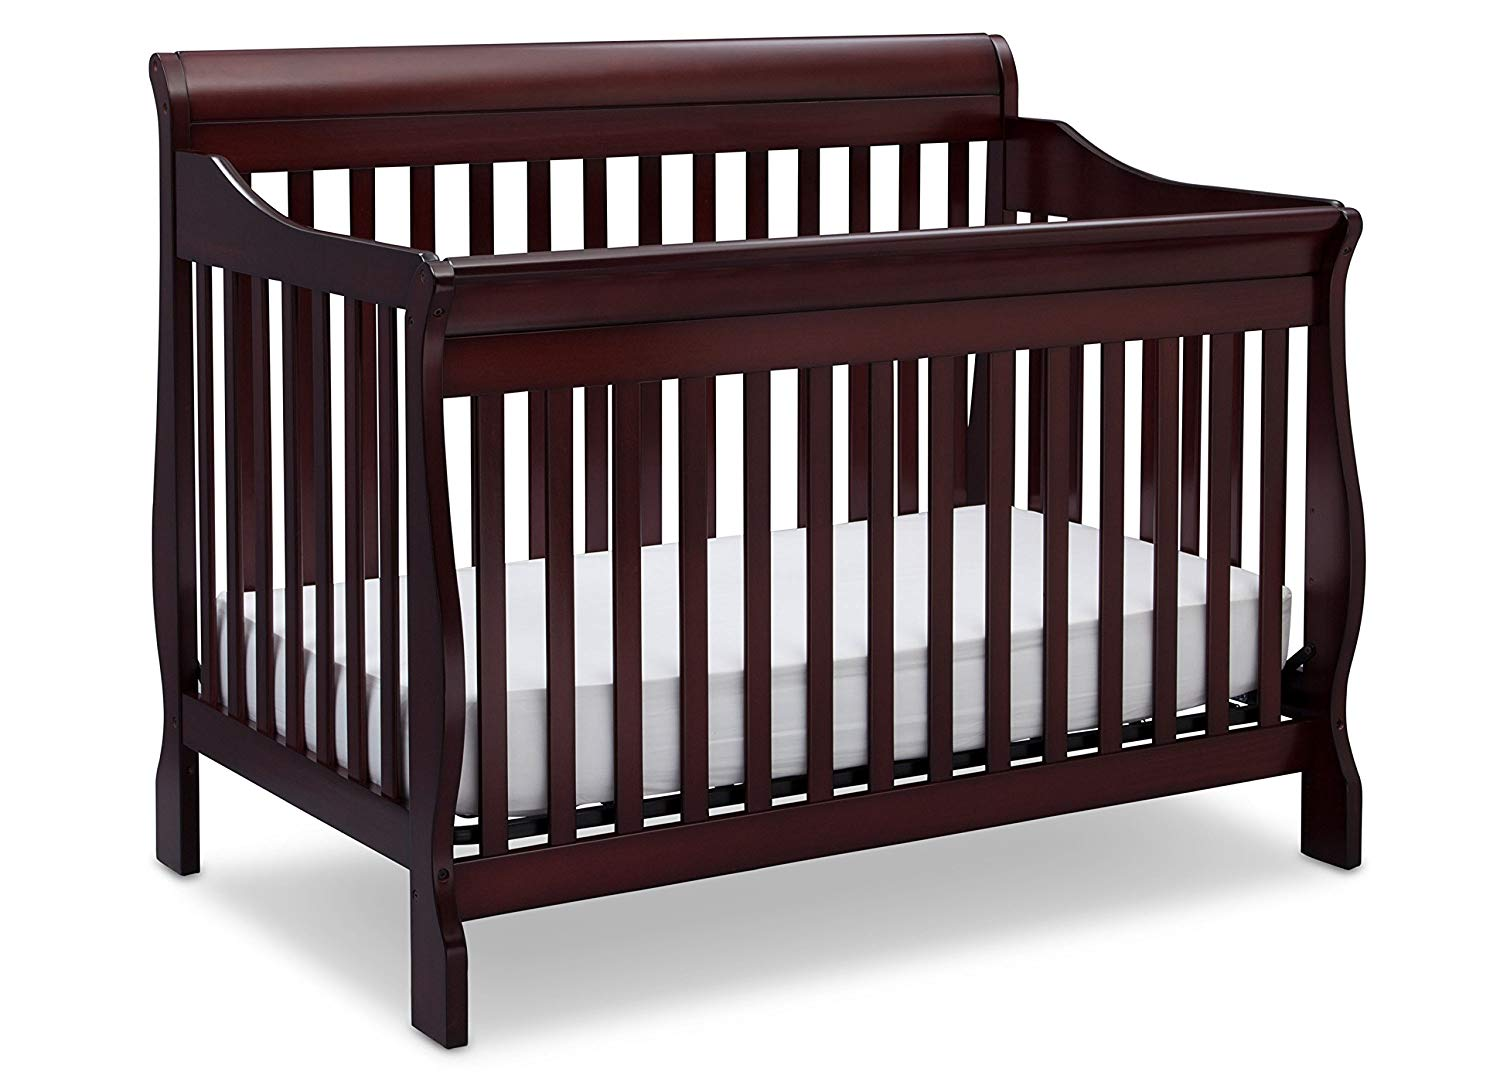 Delta Children Best Cribs Review by www.snoremagazine.com